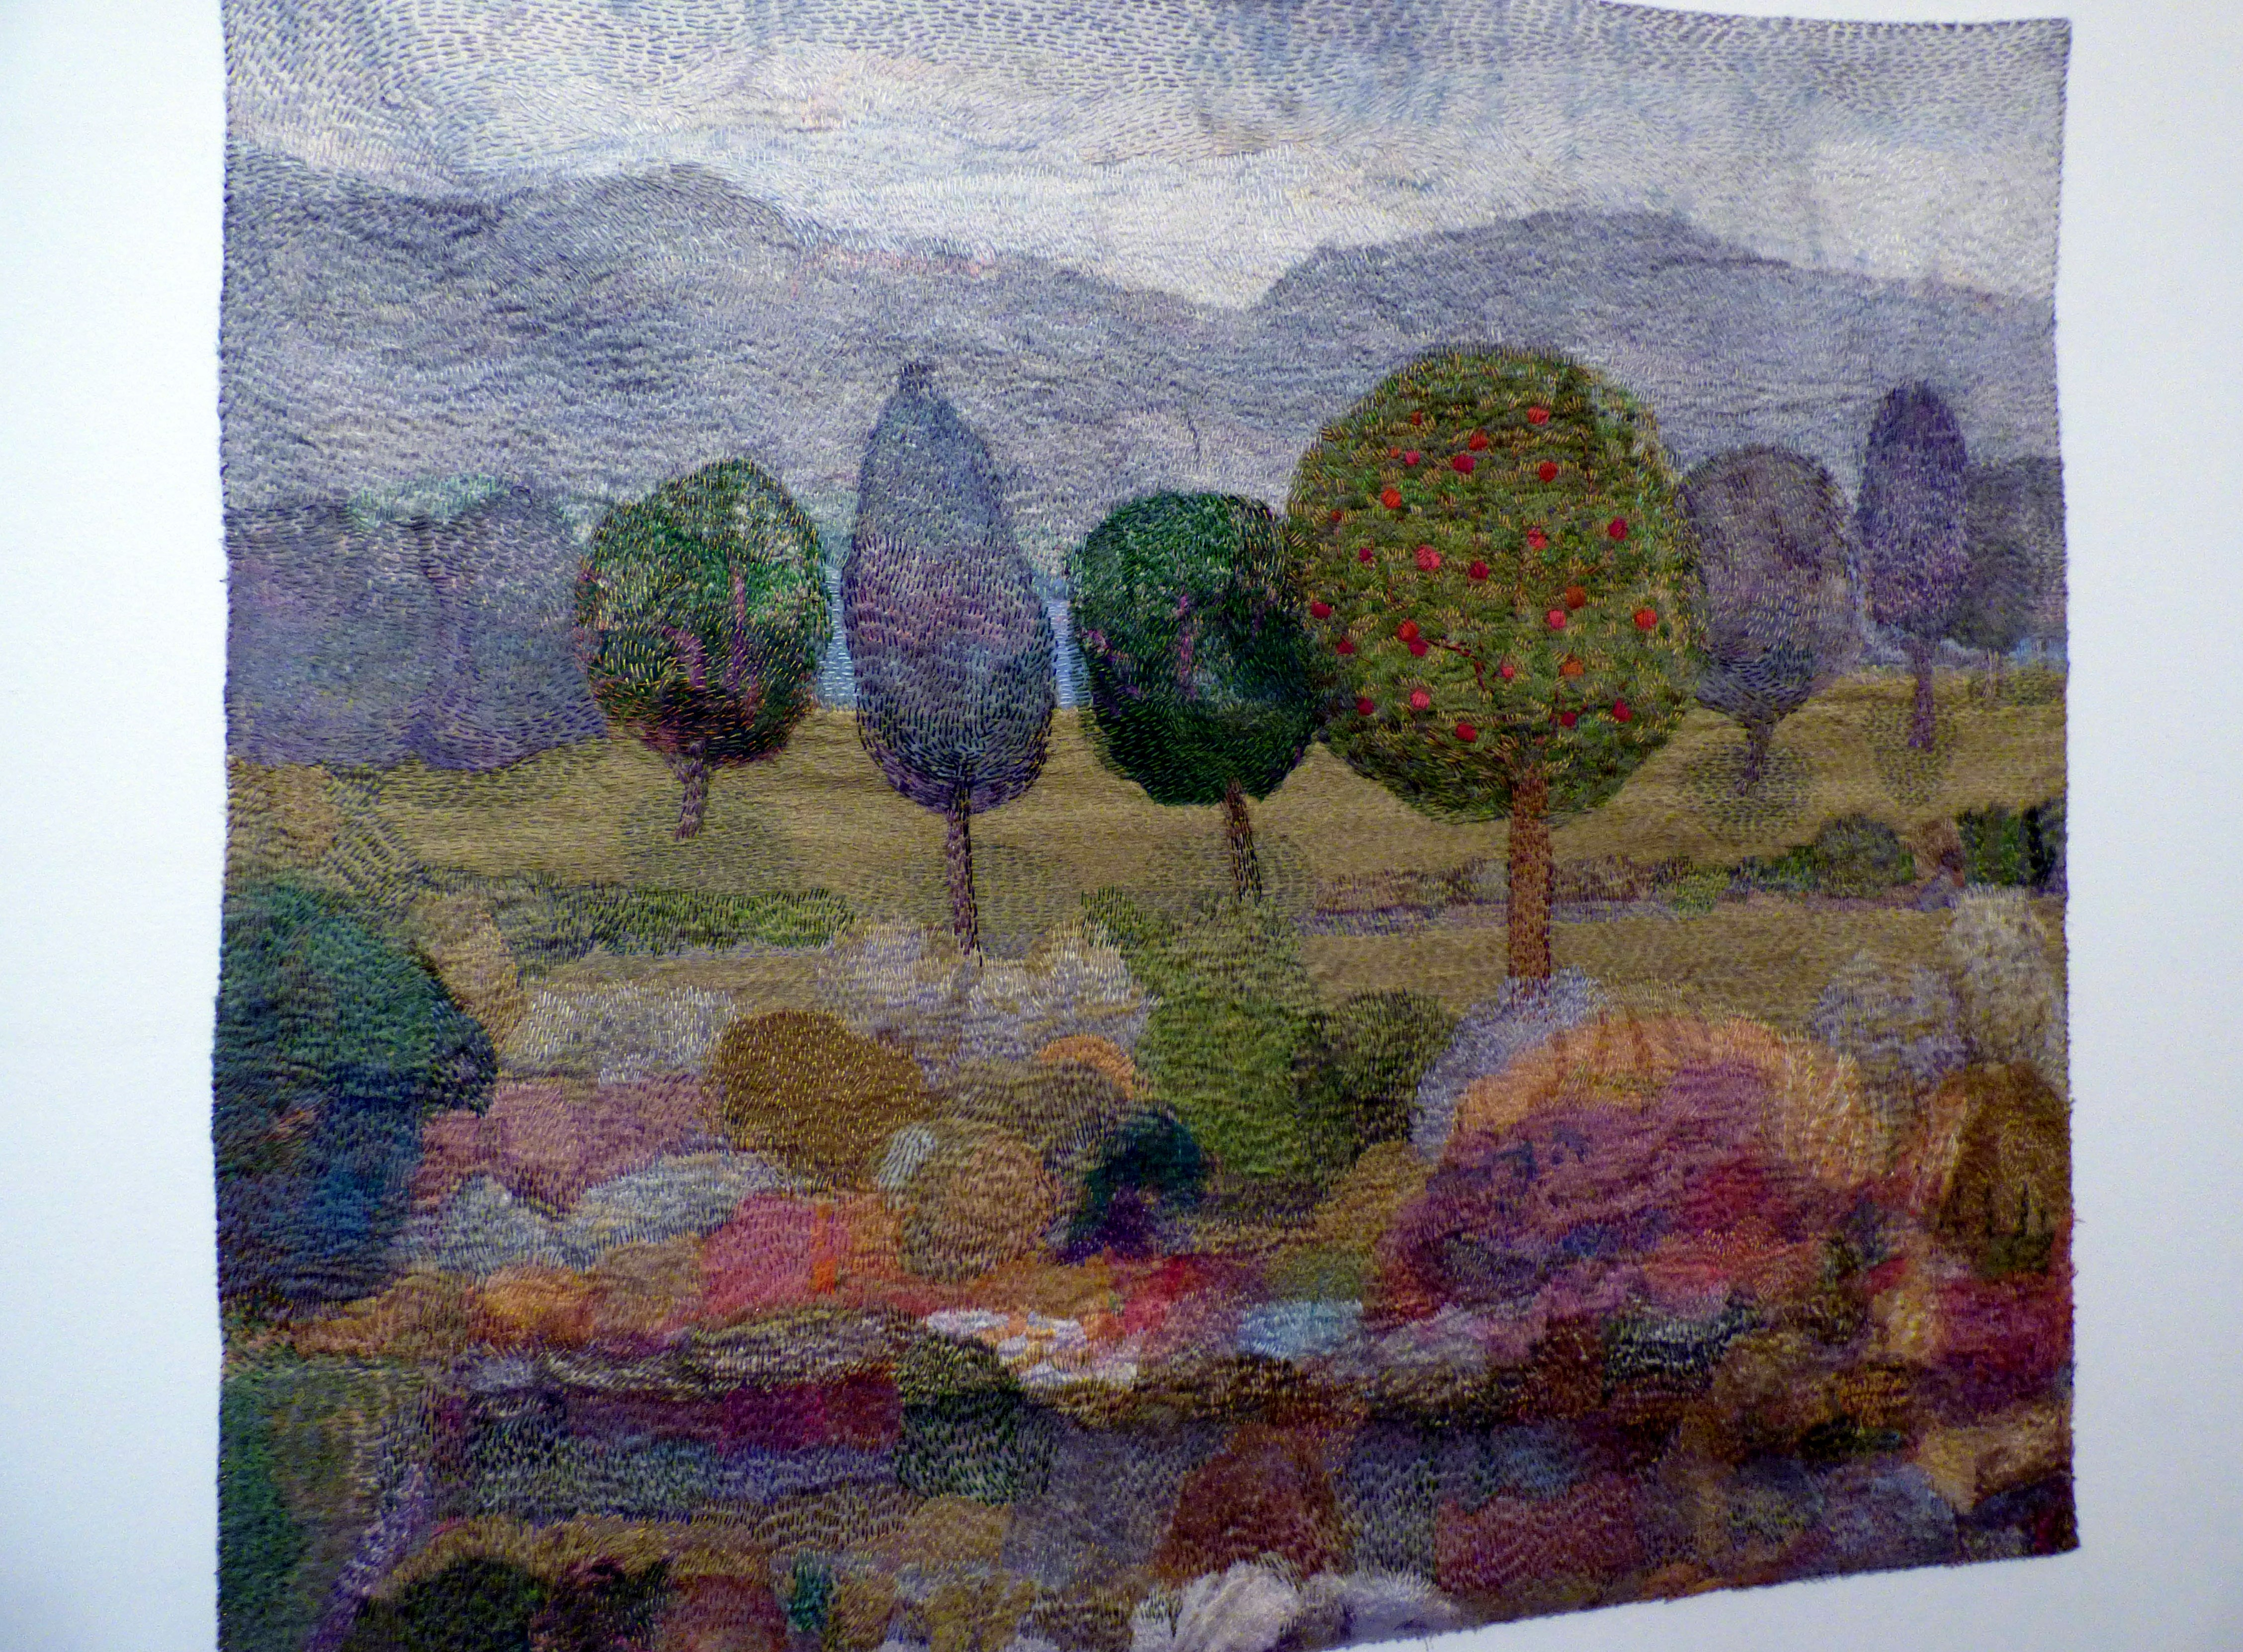 THE GARDEN by Audrey Walker, stitched textile, 2012